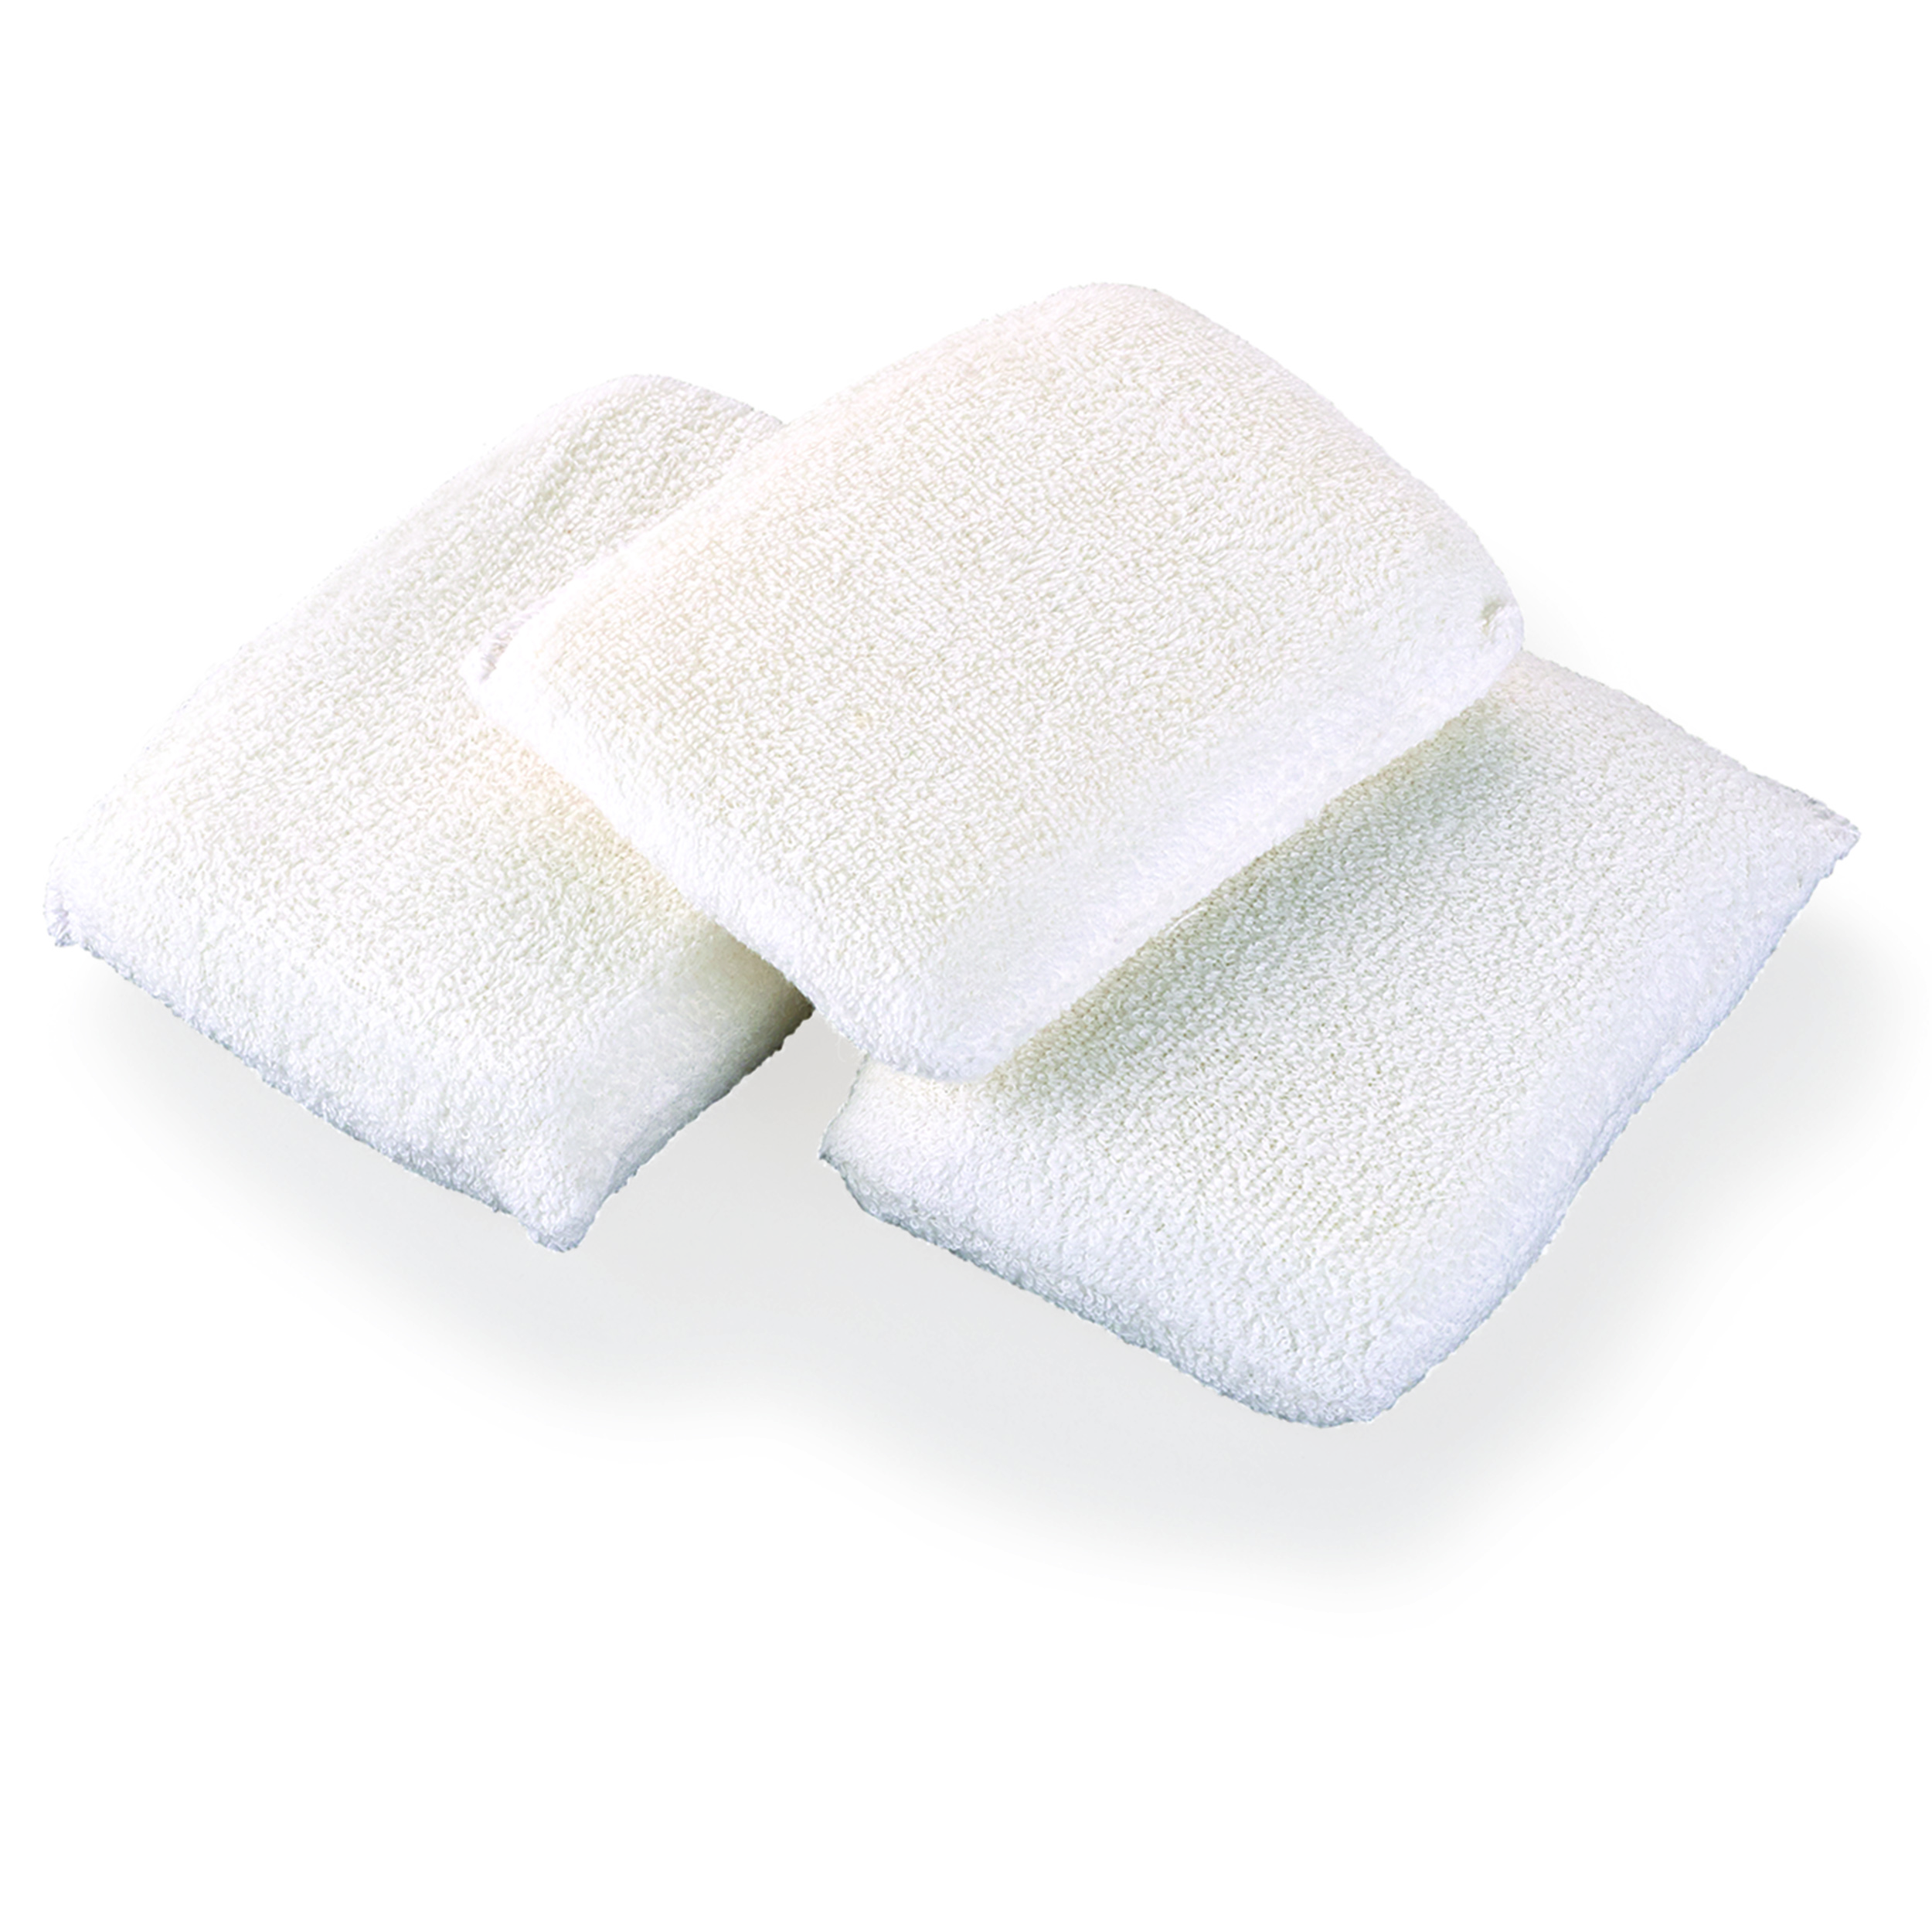 Staining Pads 3 pc